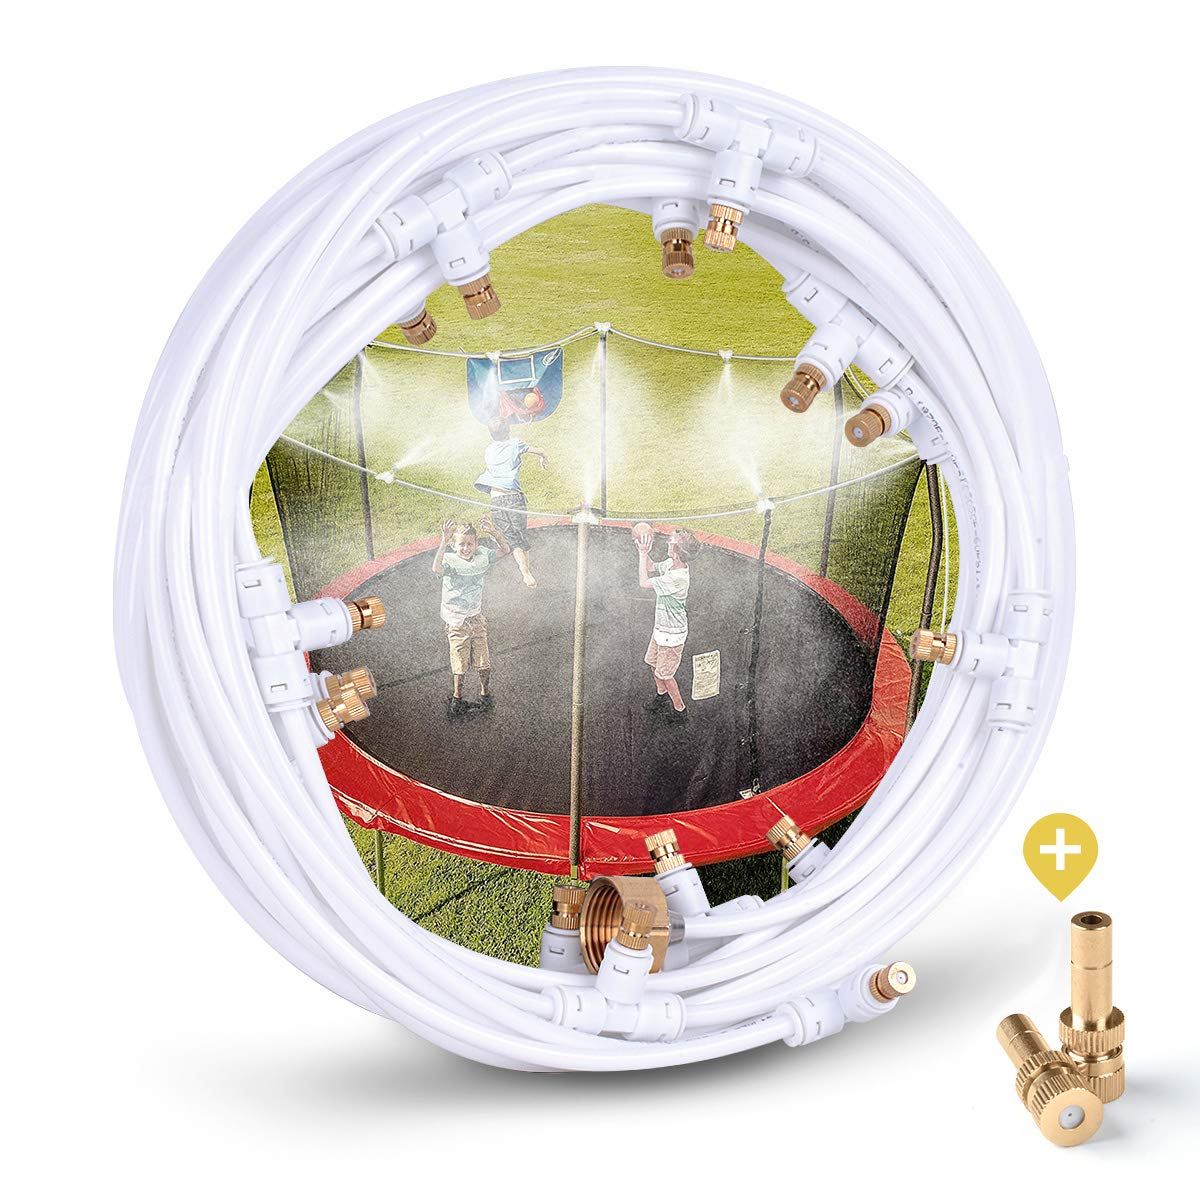 """HOMENOTE Misting Cooling System 59FT (18M) Misting Line + 16 Brass Mist Nozzles + a Metal Adapter(3/4"""") Outdoor Mister Patio Garden Greenhouse Trampoline for Water Park"""